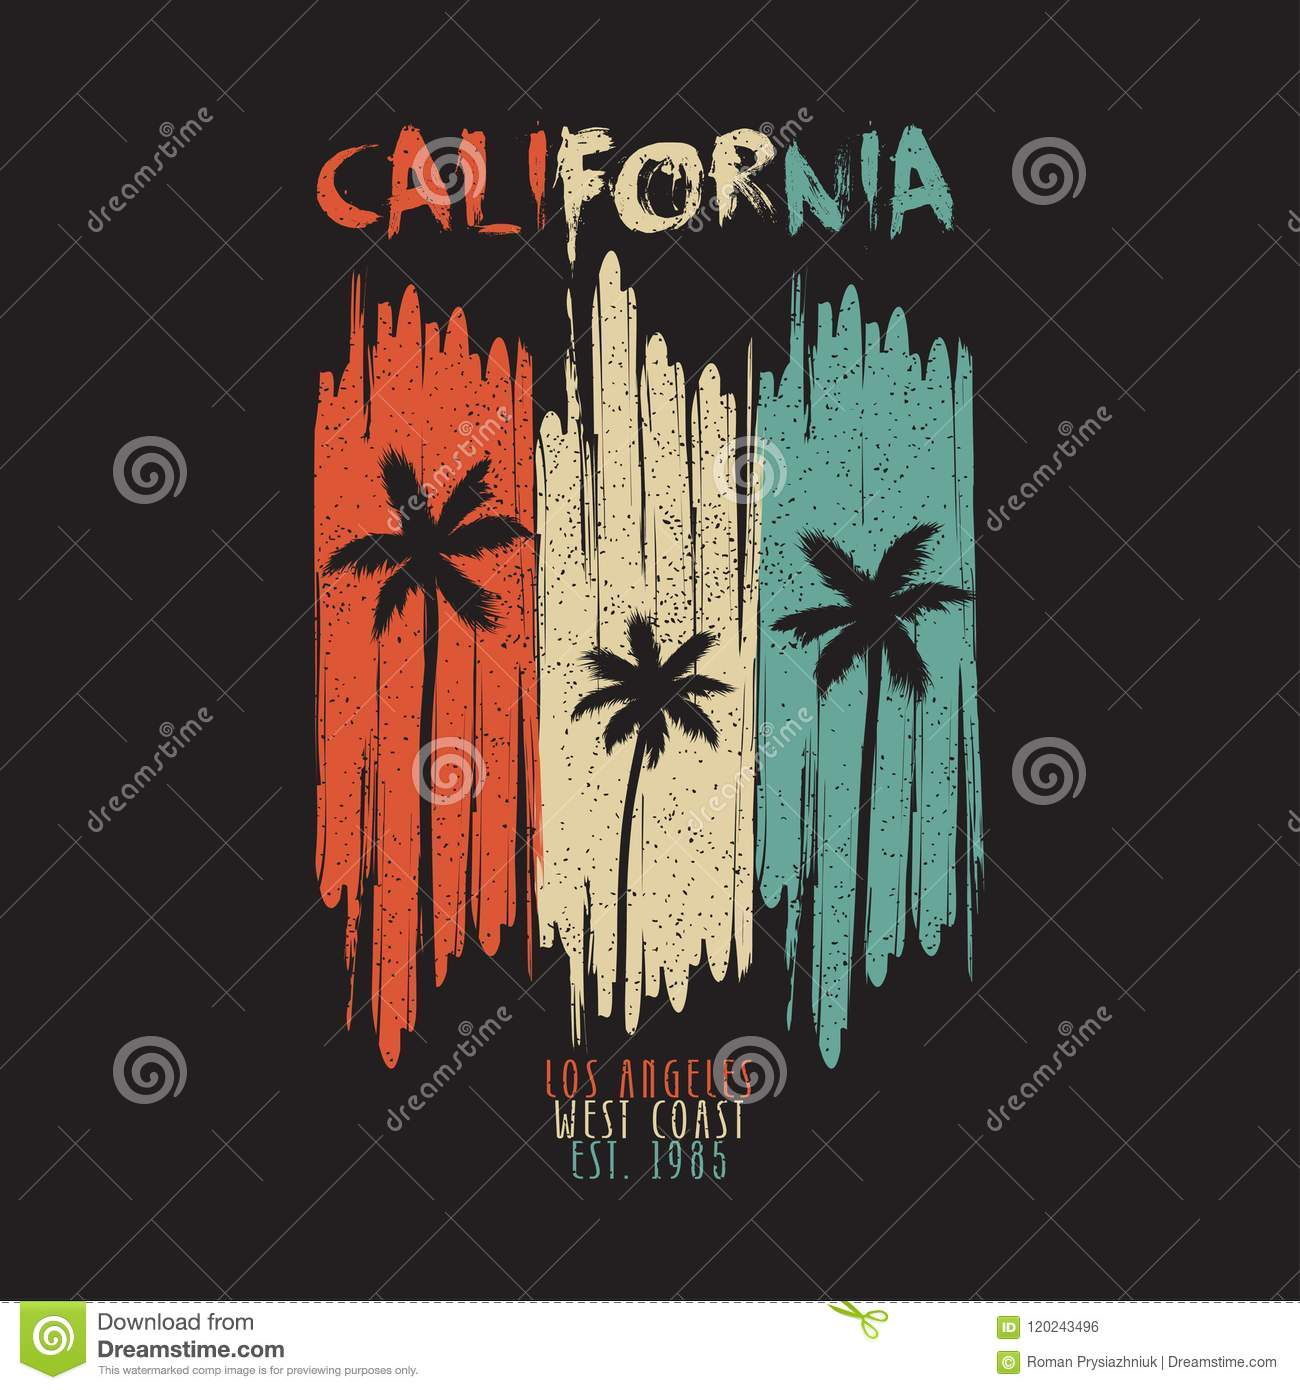 California vintage apparel picture 26